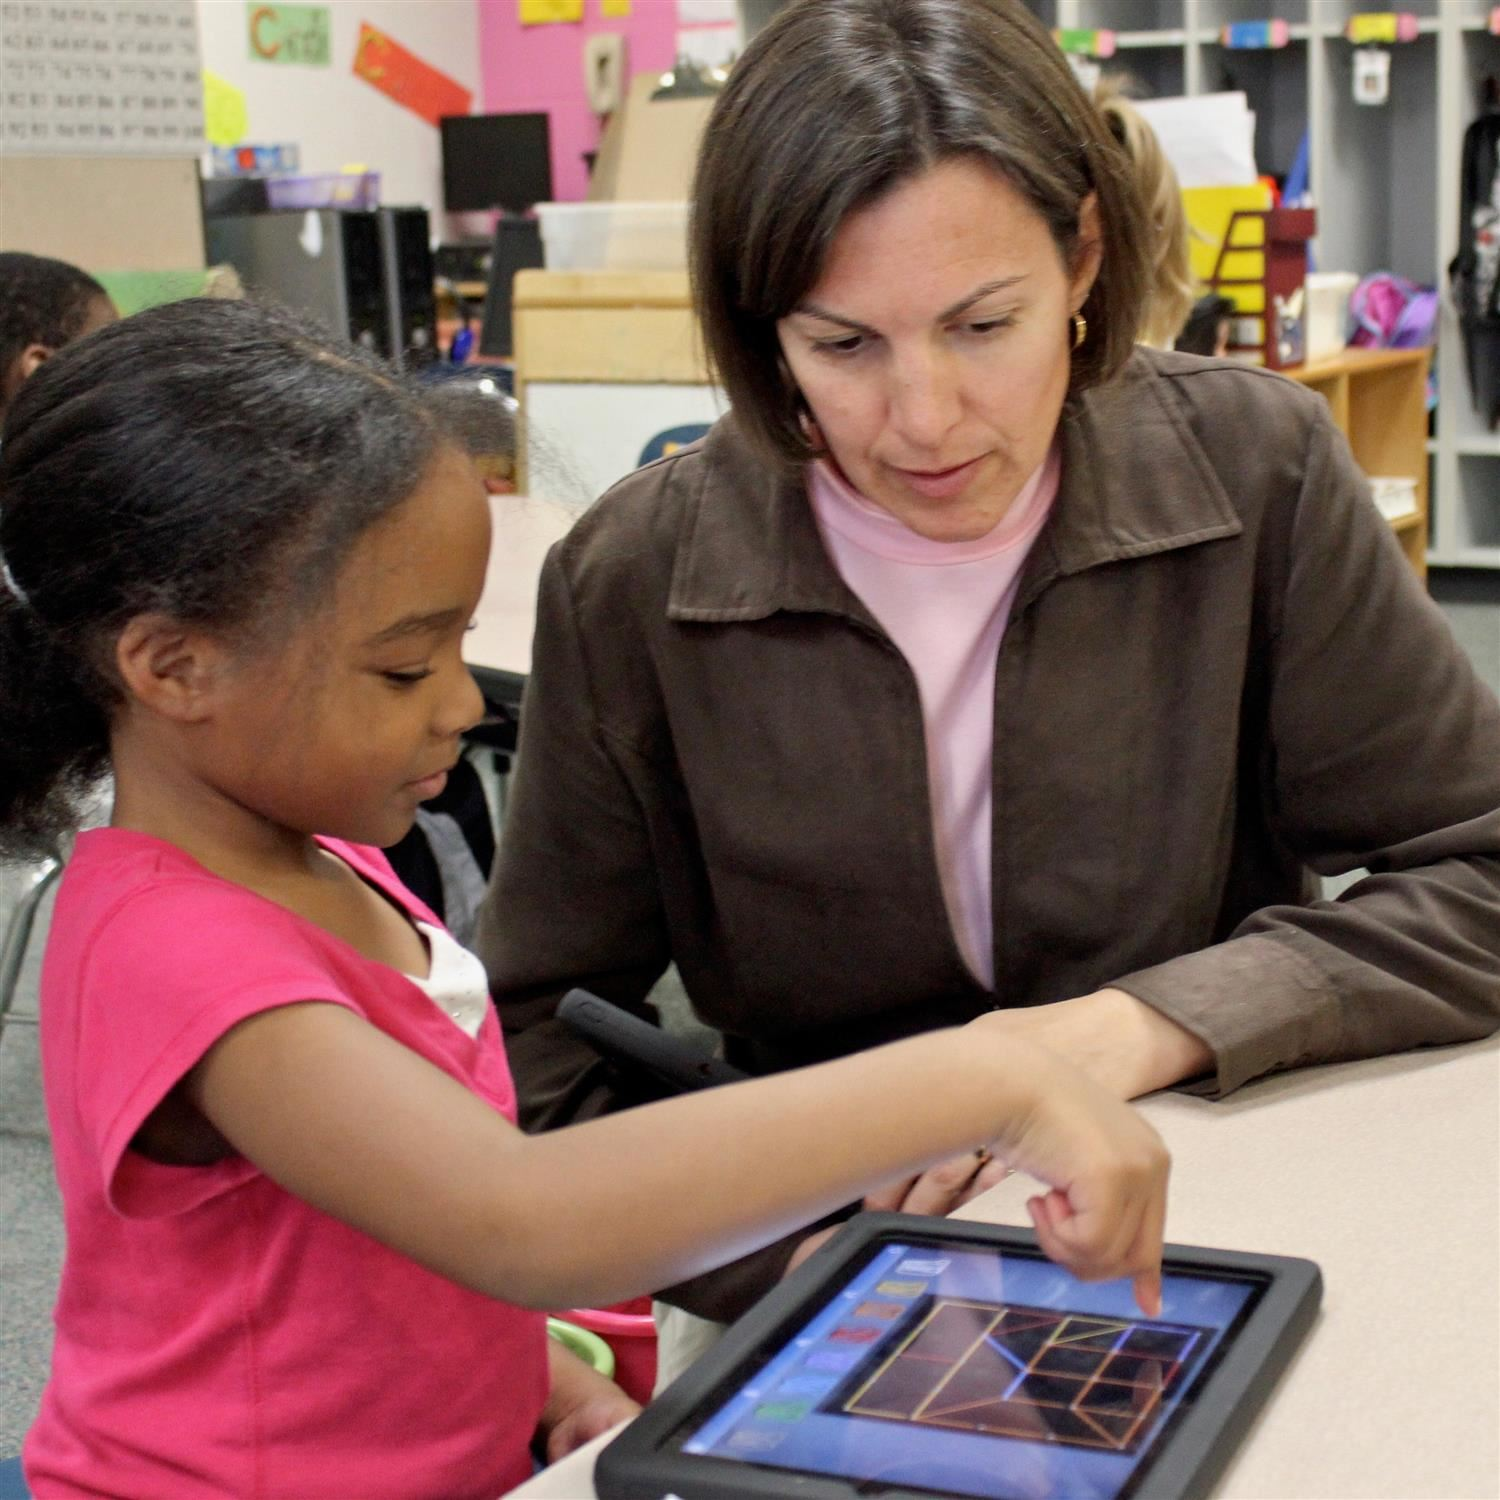 Teacher helps kindergarten student working on a portable device